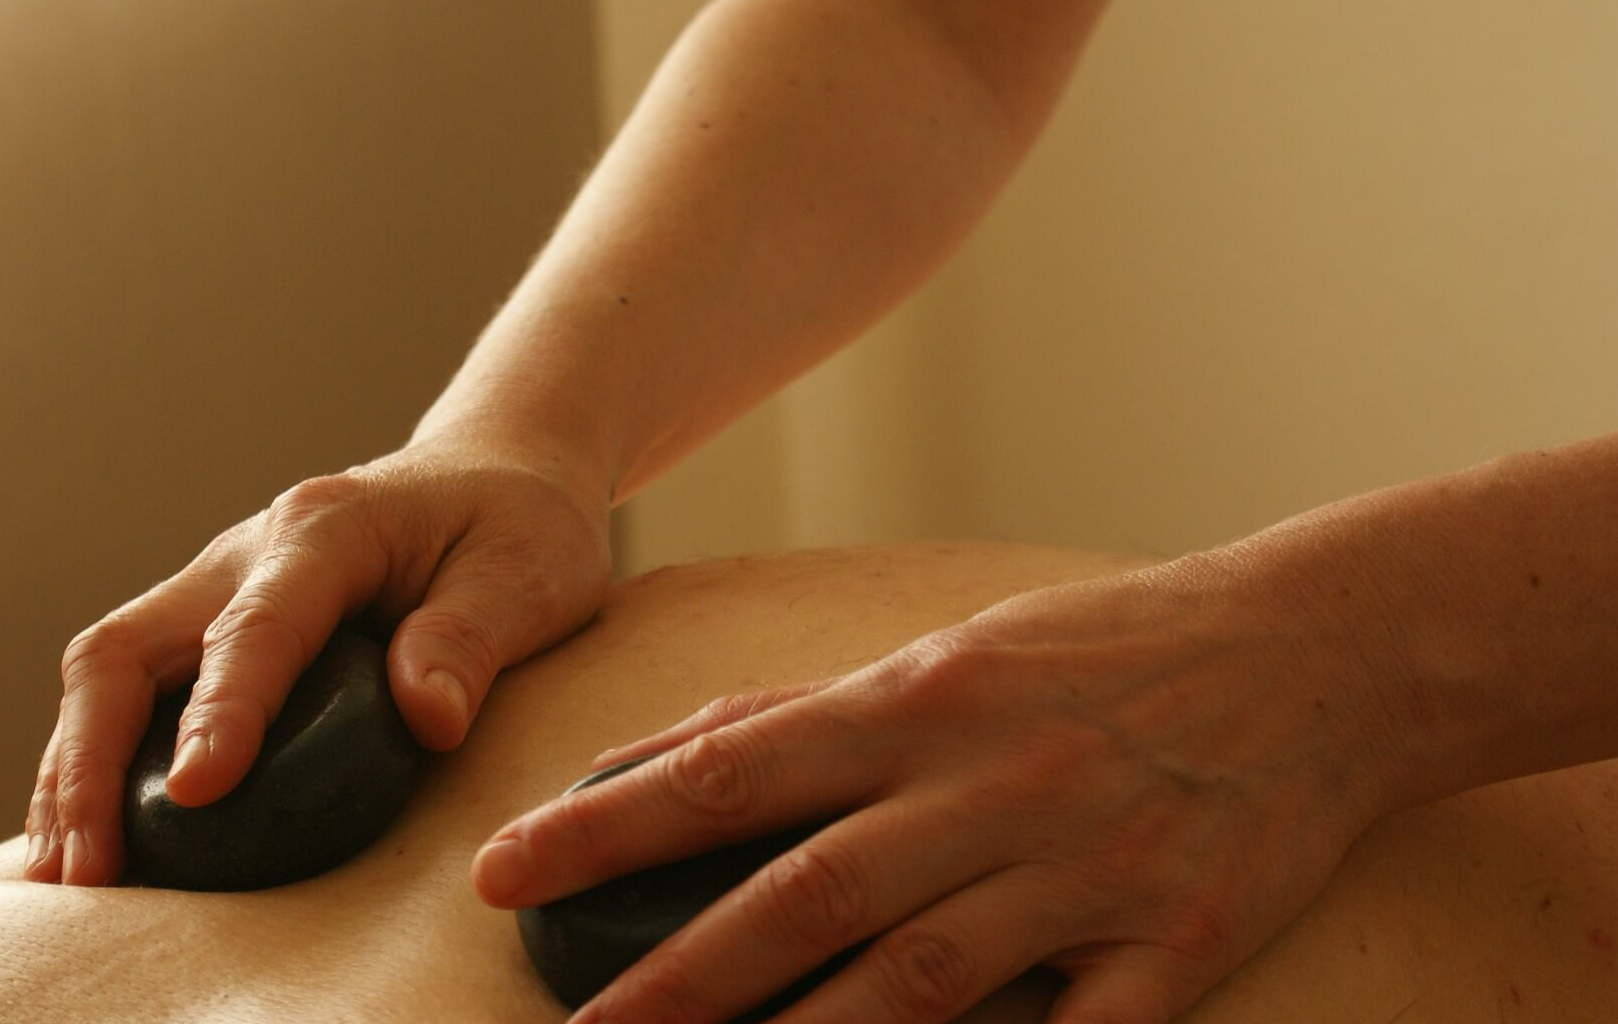 Massagestarnberg